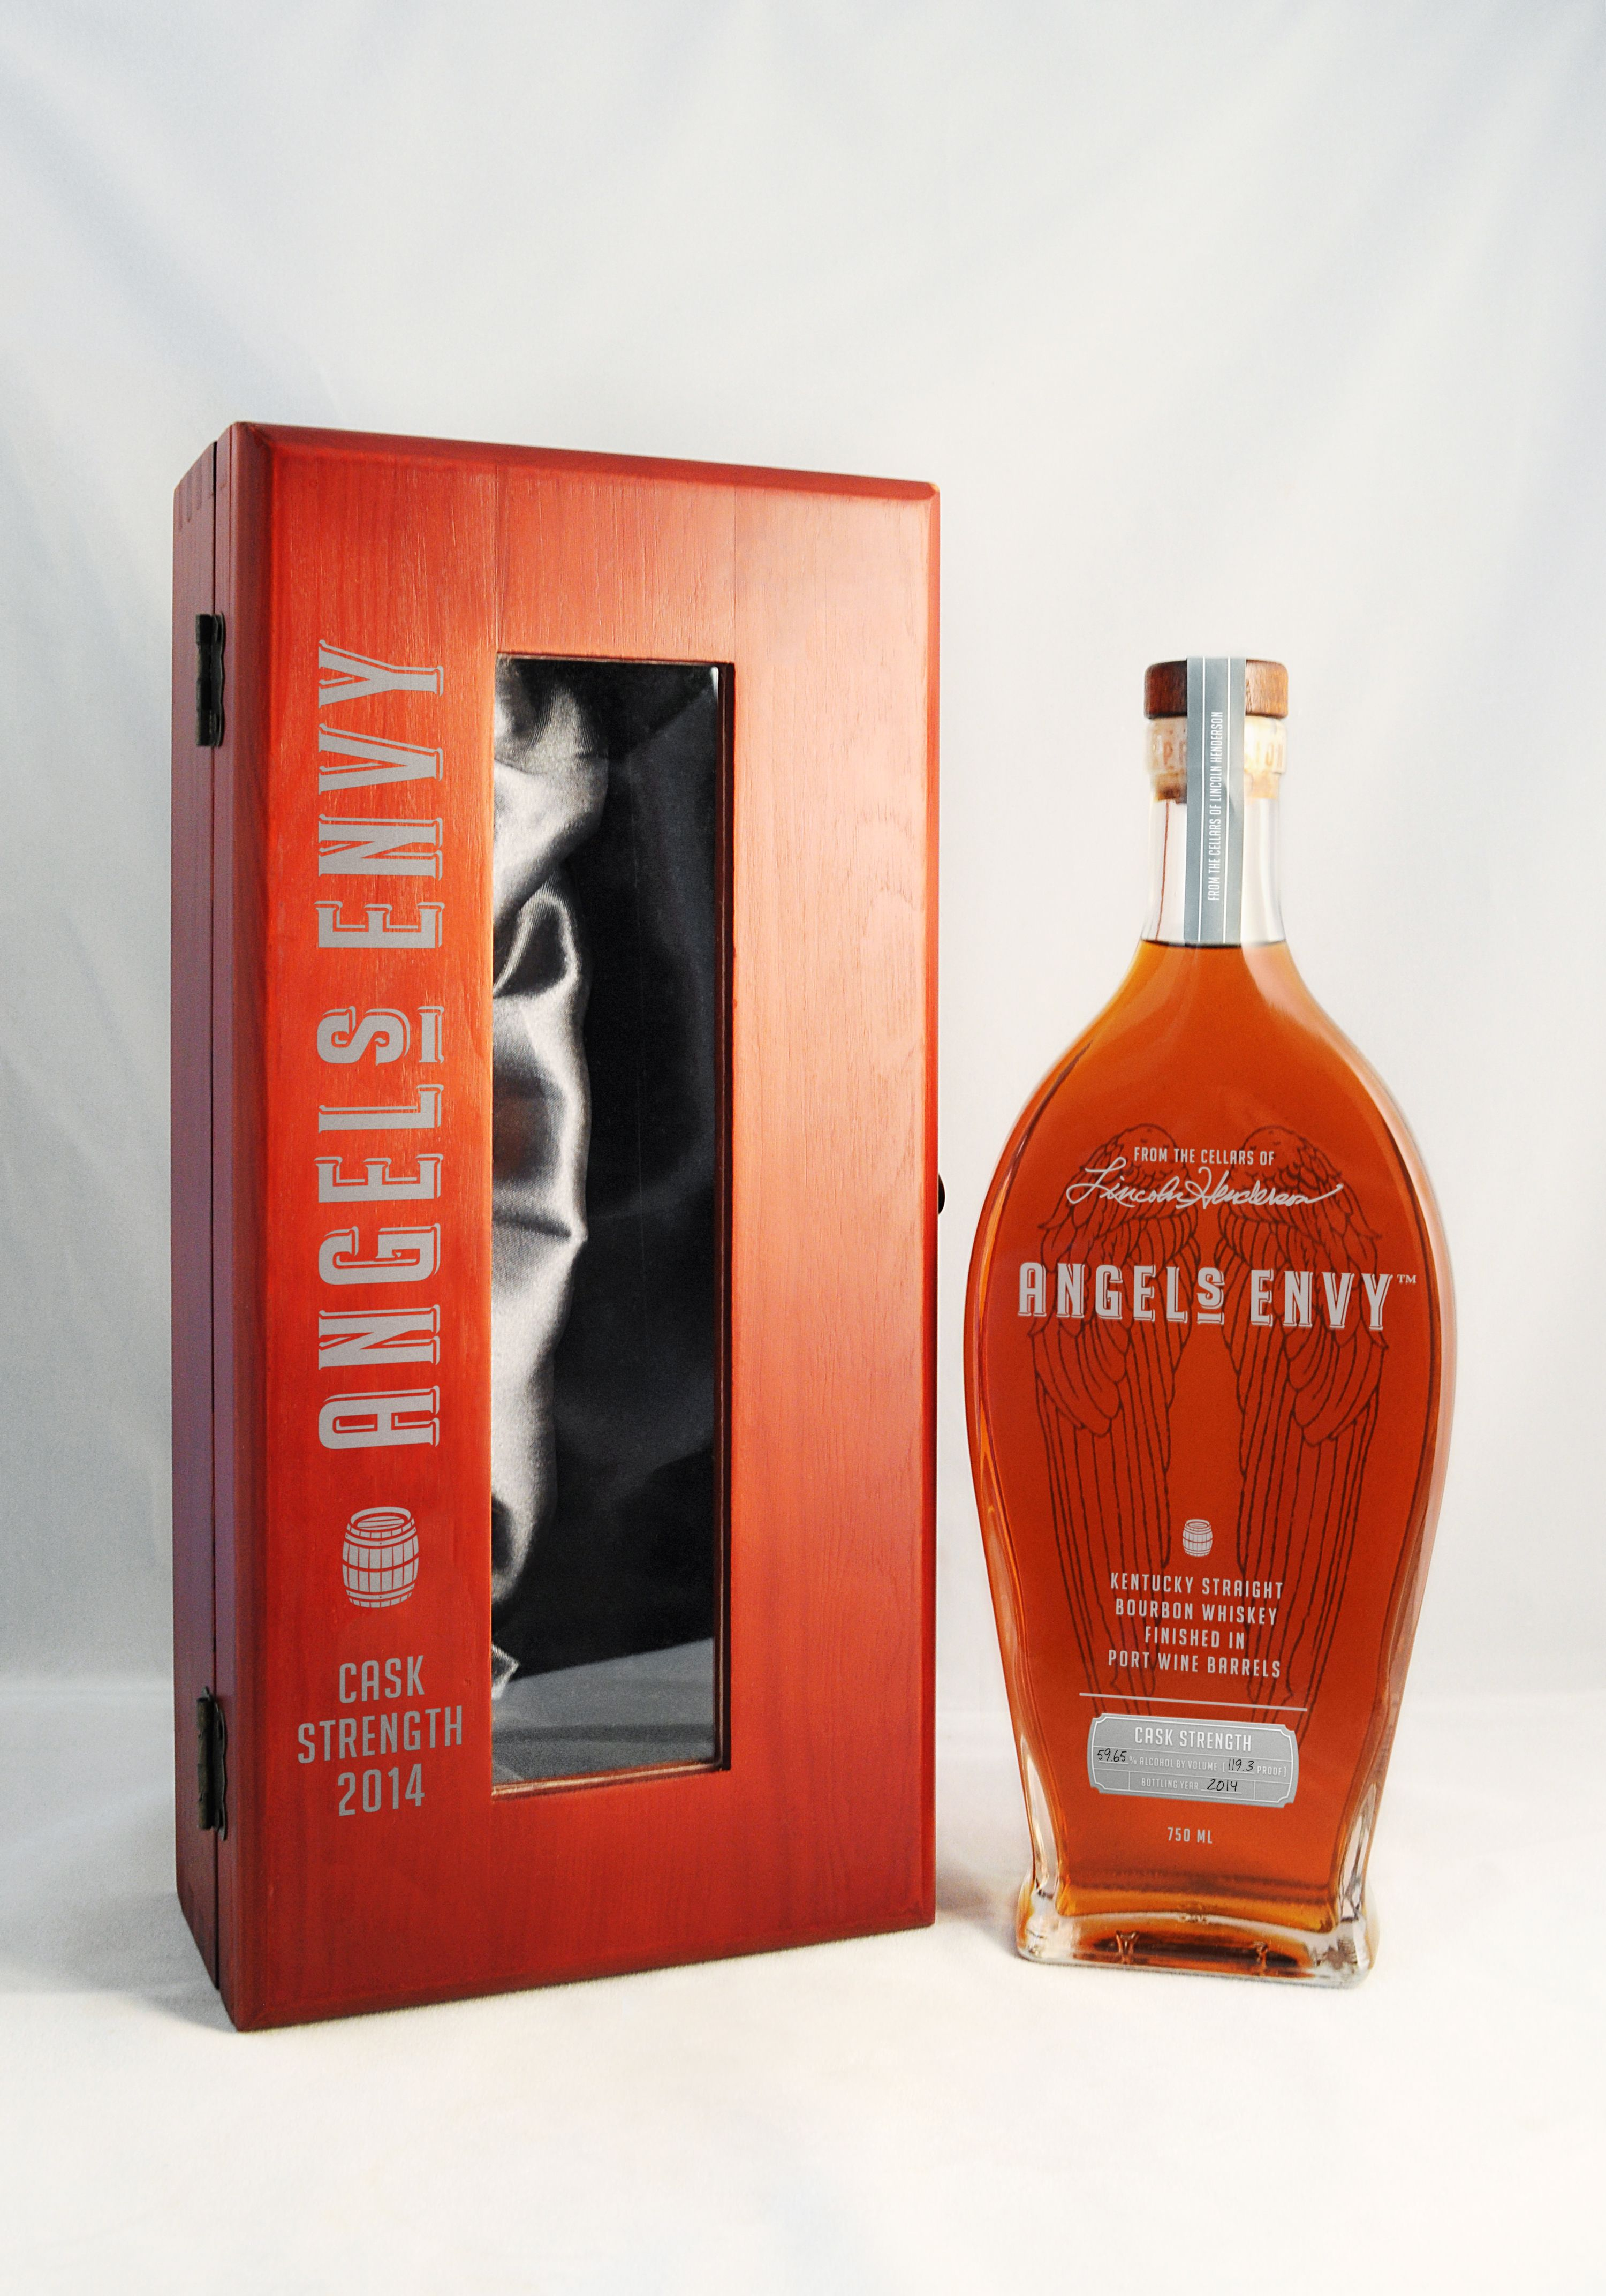 Angels Envy Cask Strength 2014 From Port Wine Barrels I Got This In The Wooden Presentation Box For My Husband For Christmas Cigars And Whiskey Bourbon Cask